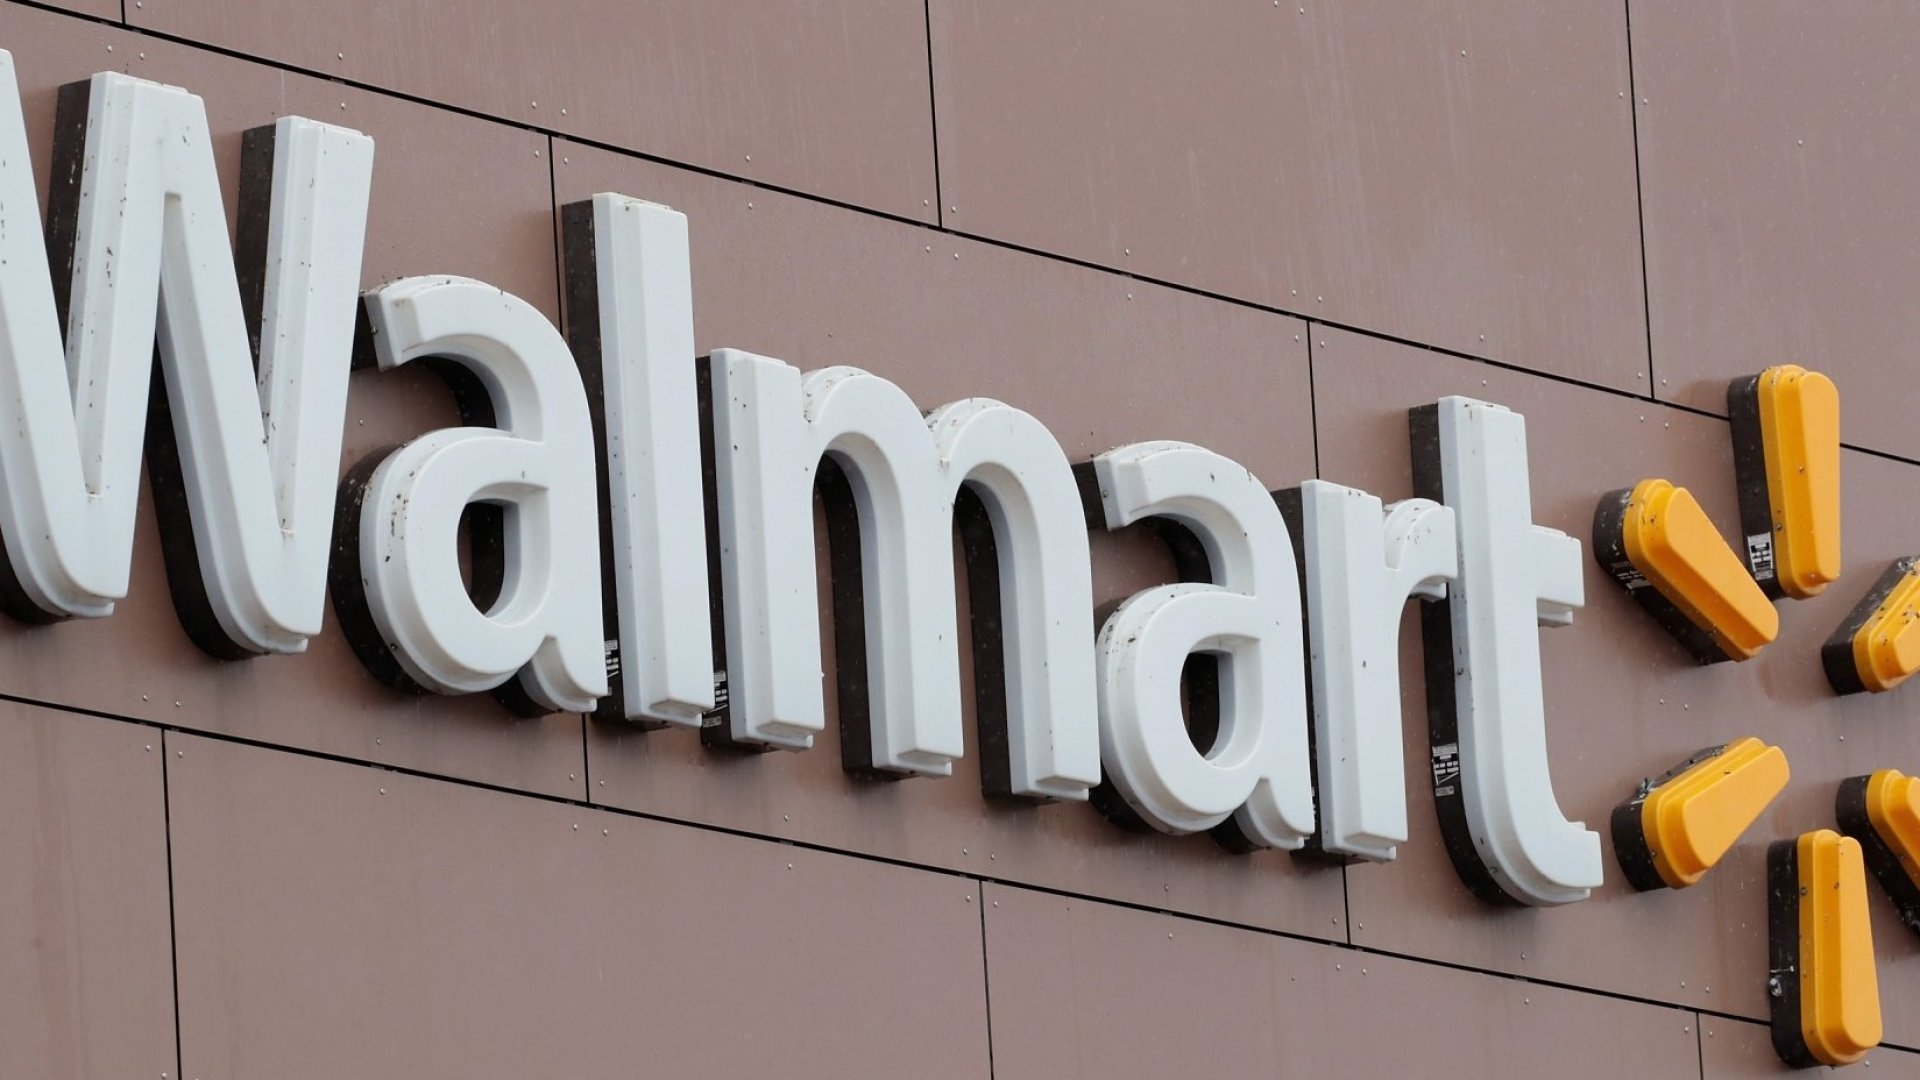 Walmart Wants to Do What to Its Employees?